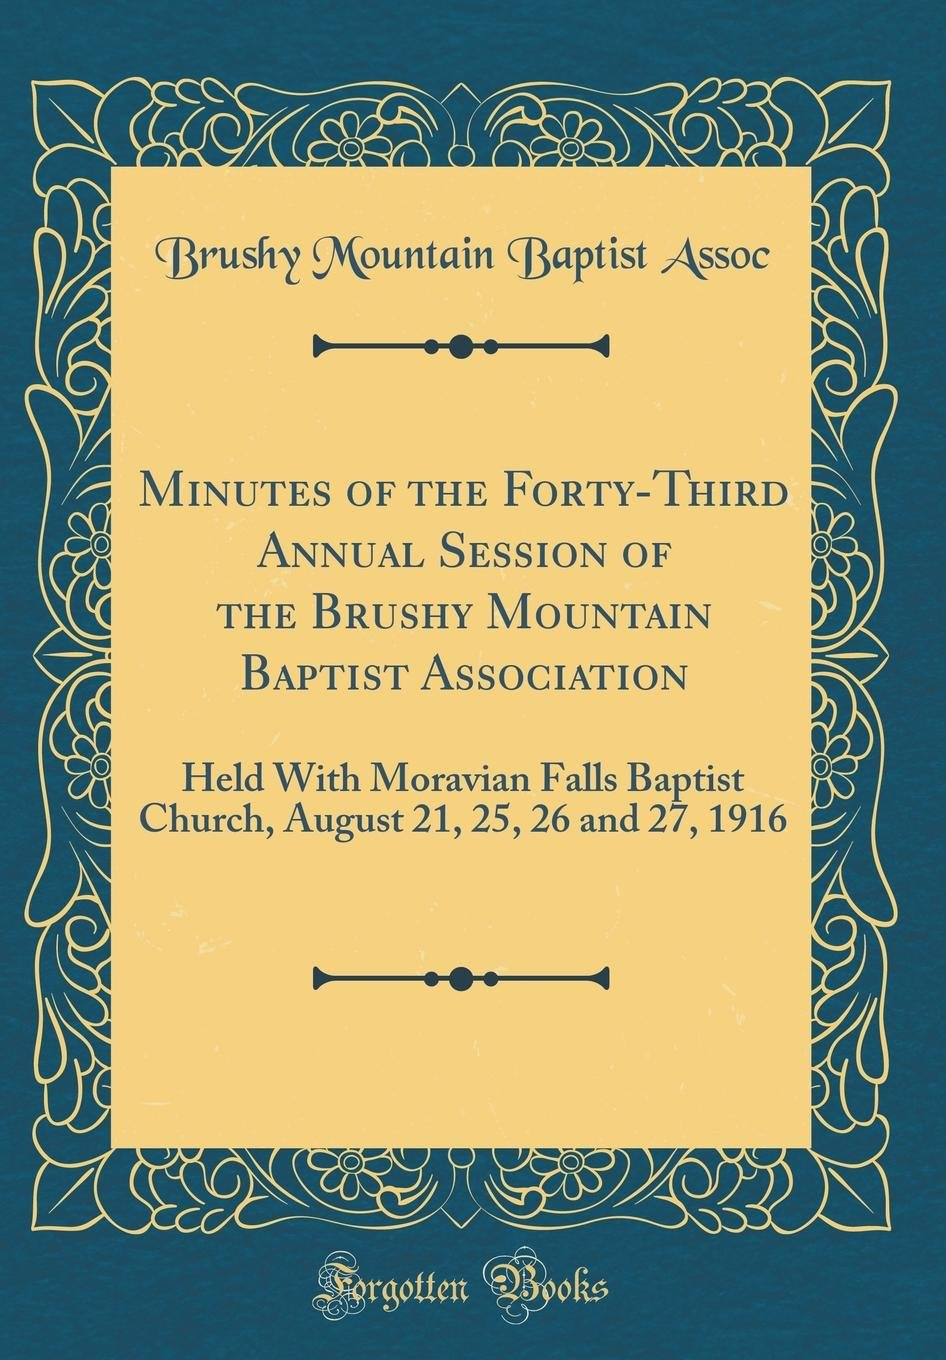 Minutes of the Forty-Third Annual Session of the Brushy Mountain Baptist Association: Held with Moravian Falls Baptist Church, August 21, 25, 26 and 27, 1916 (Classic Reprint) PDF